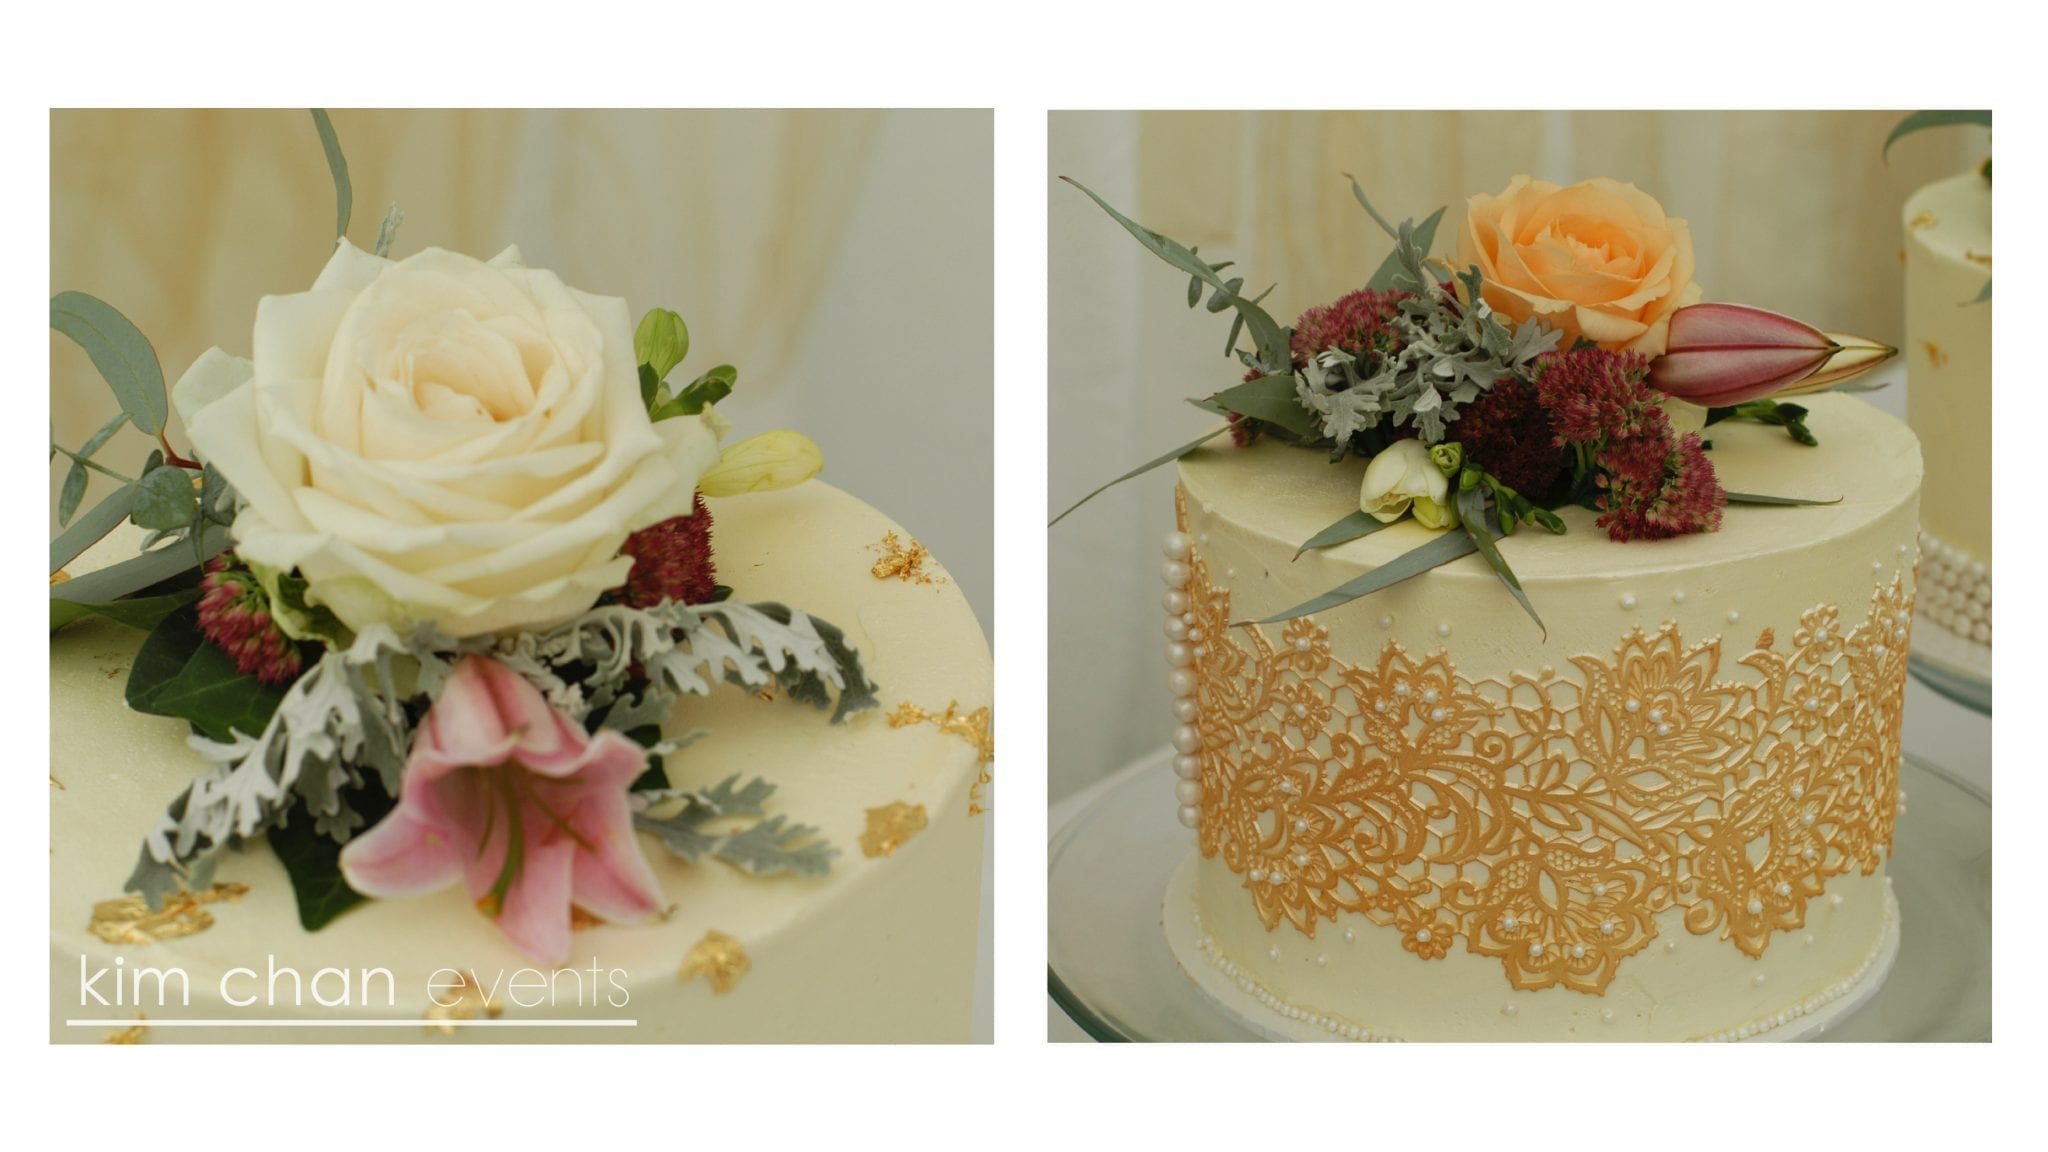 kim chan events | flowers the perfect finishing touches cake decor